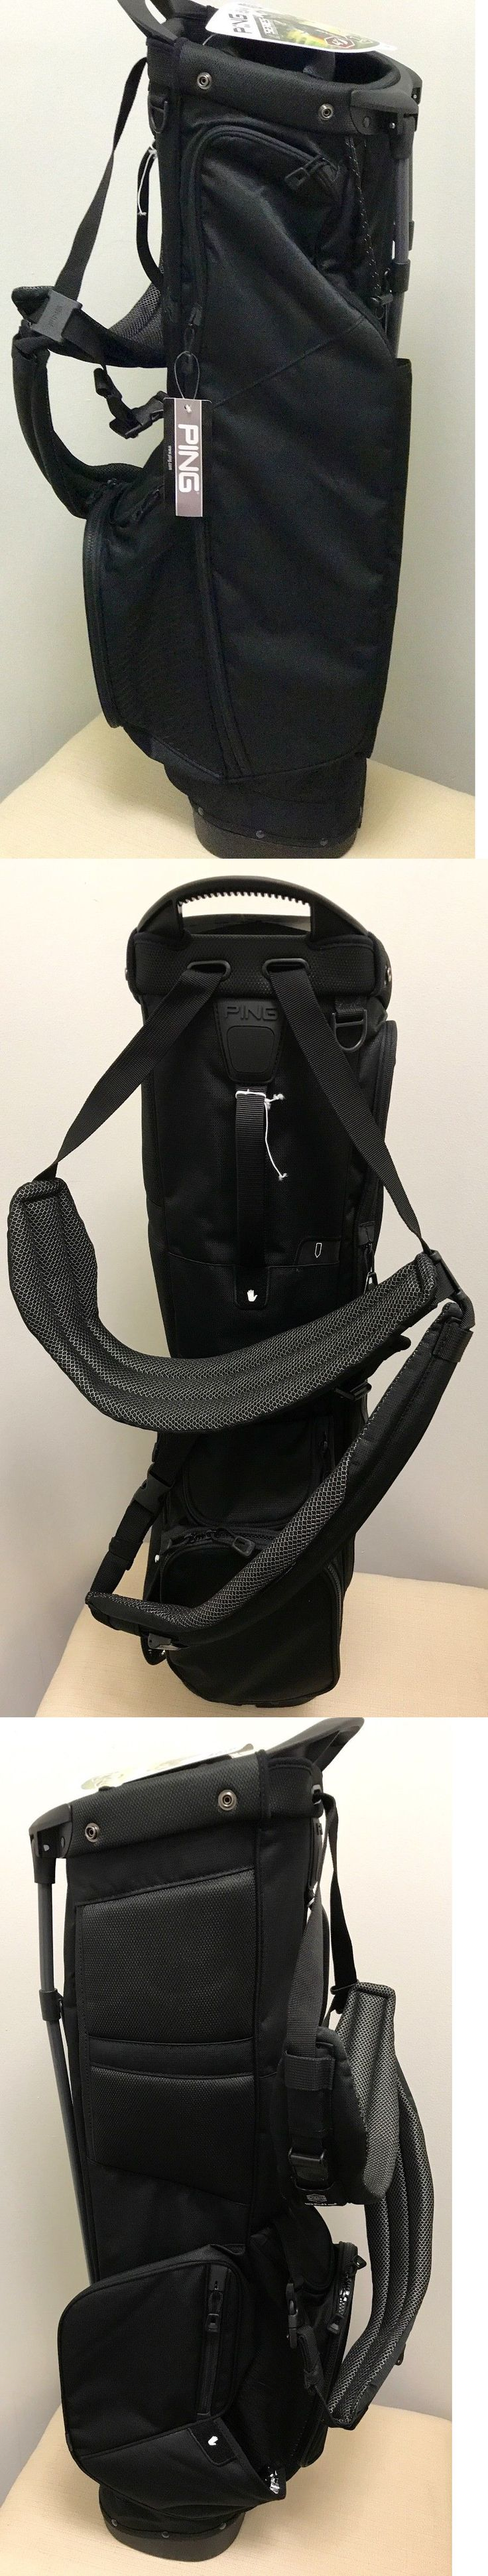 Golf Club Bags 30109: 2017 Ping 4 Series Golf Stand Bag Black No Ping Logos New -> BUY IT NOW ONLY: $169.95 on eBay!